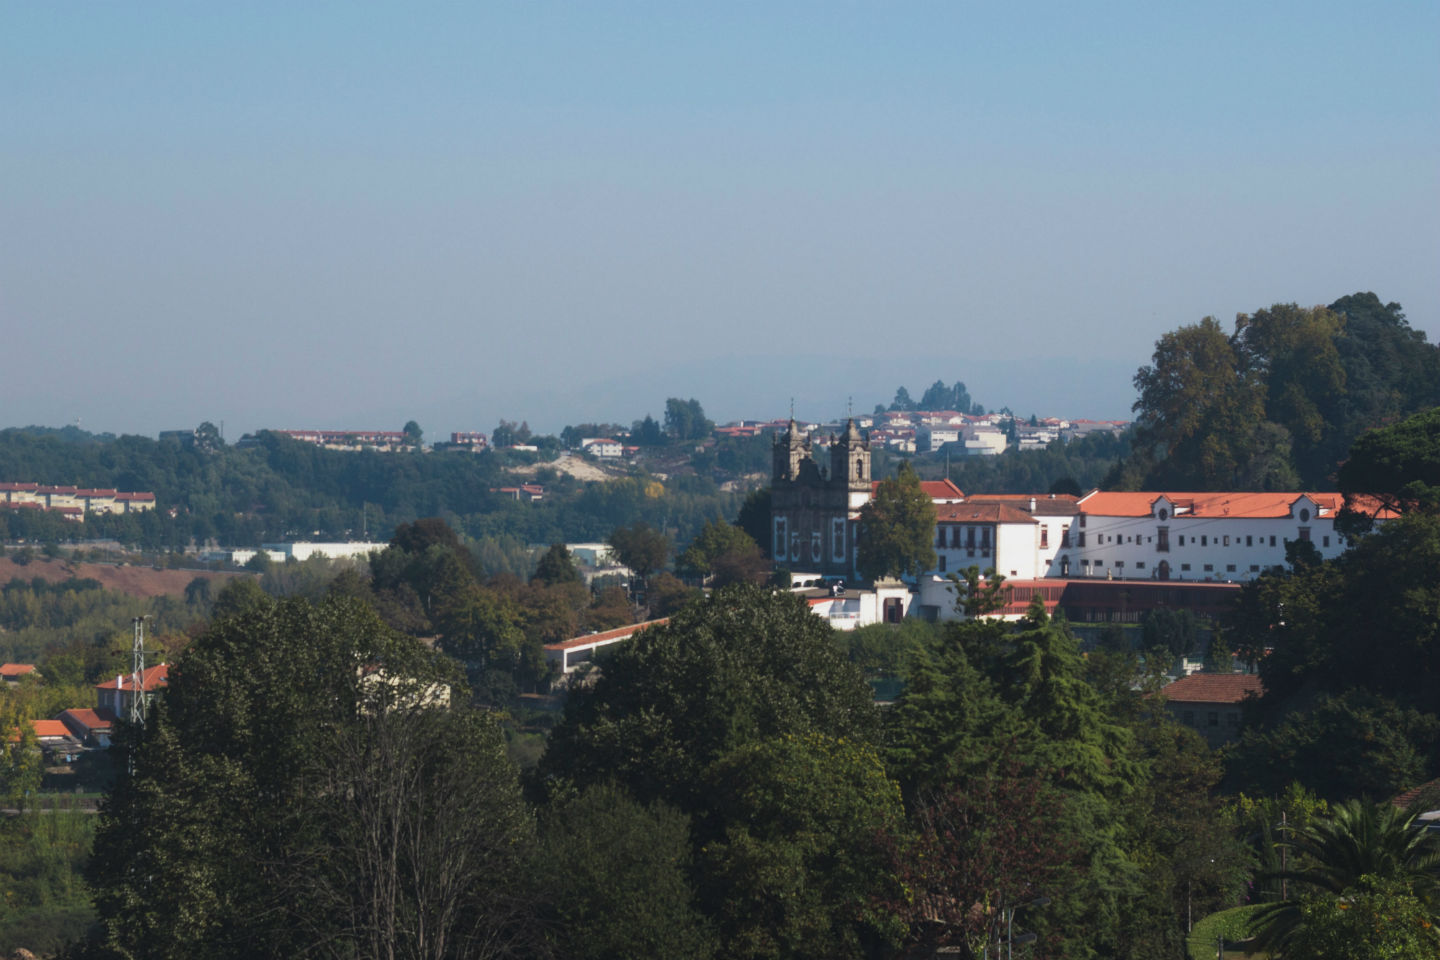 overview of trees and buildings in guimaraes